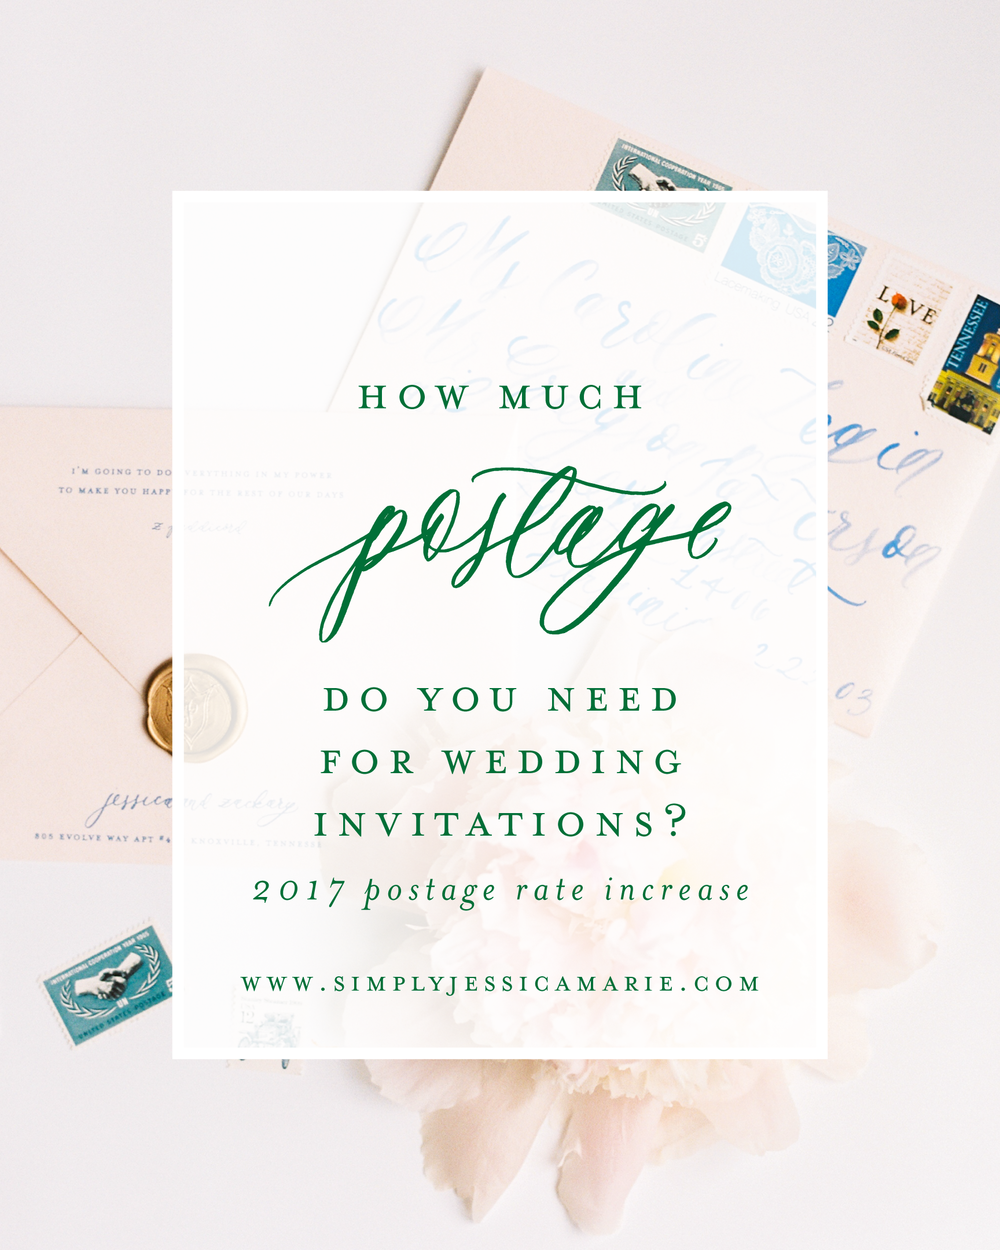 how much postage do you need for wedding invitations With how much notice wedding invitations